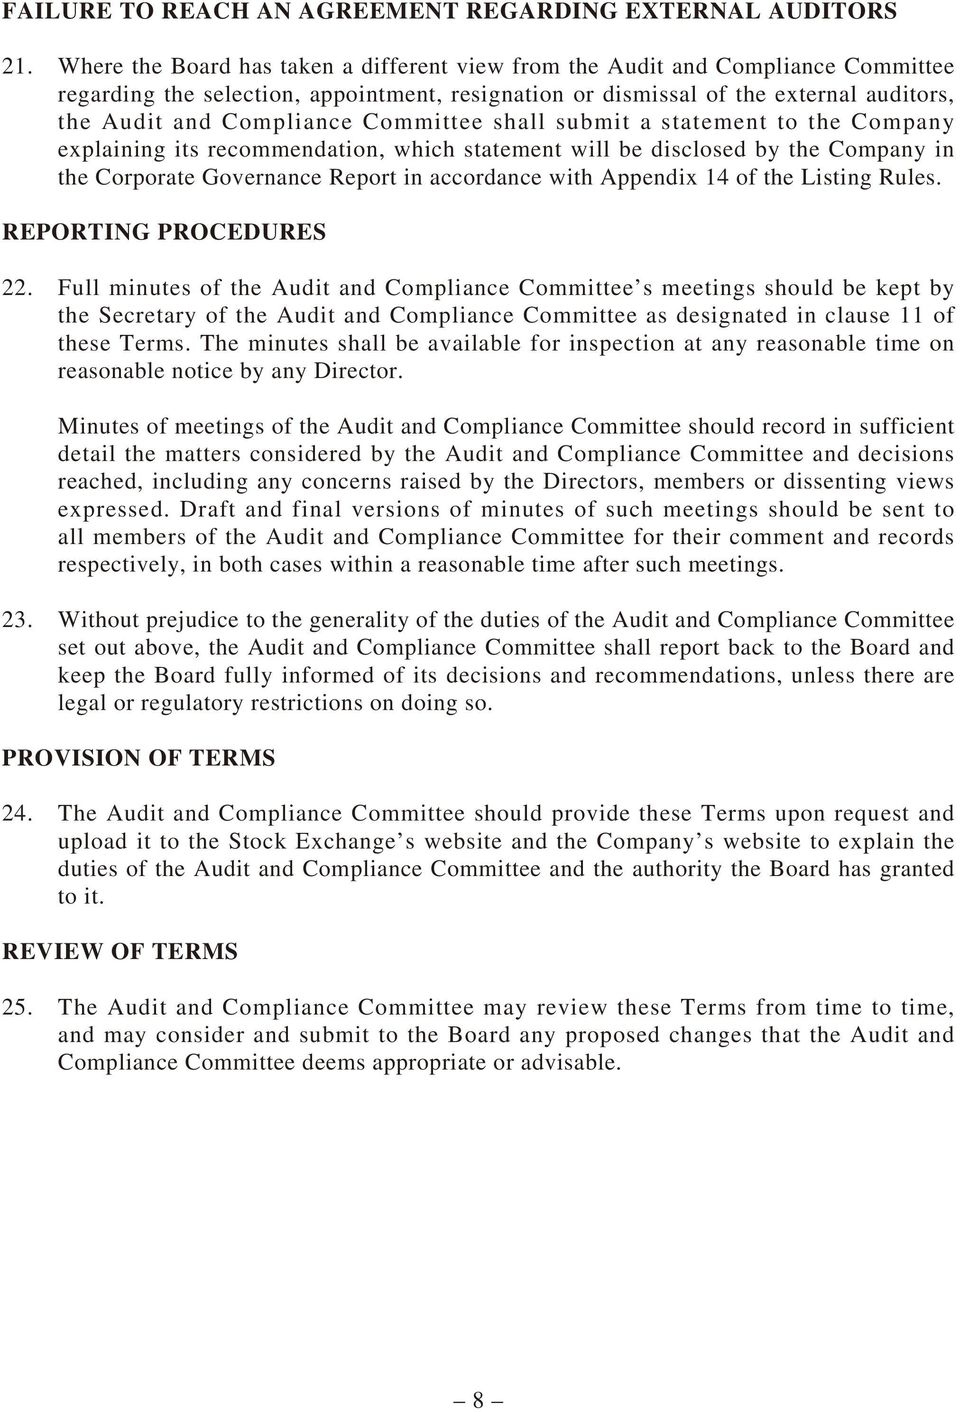 Committee shall submit a statement to the Company explaining its recommendation, which statement will be disclosed by the Company in the Corporate Governance Report in accordance with Appendix 14 of